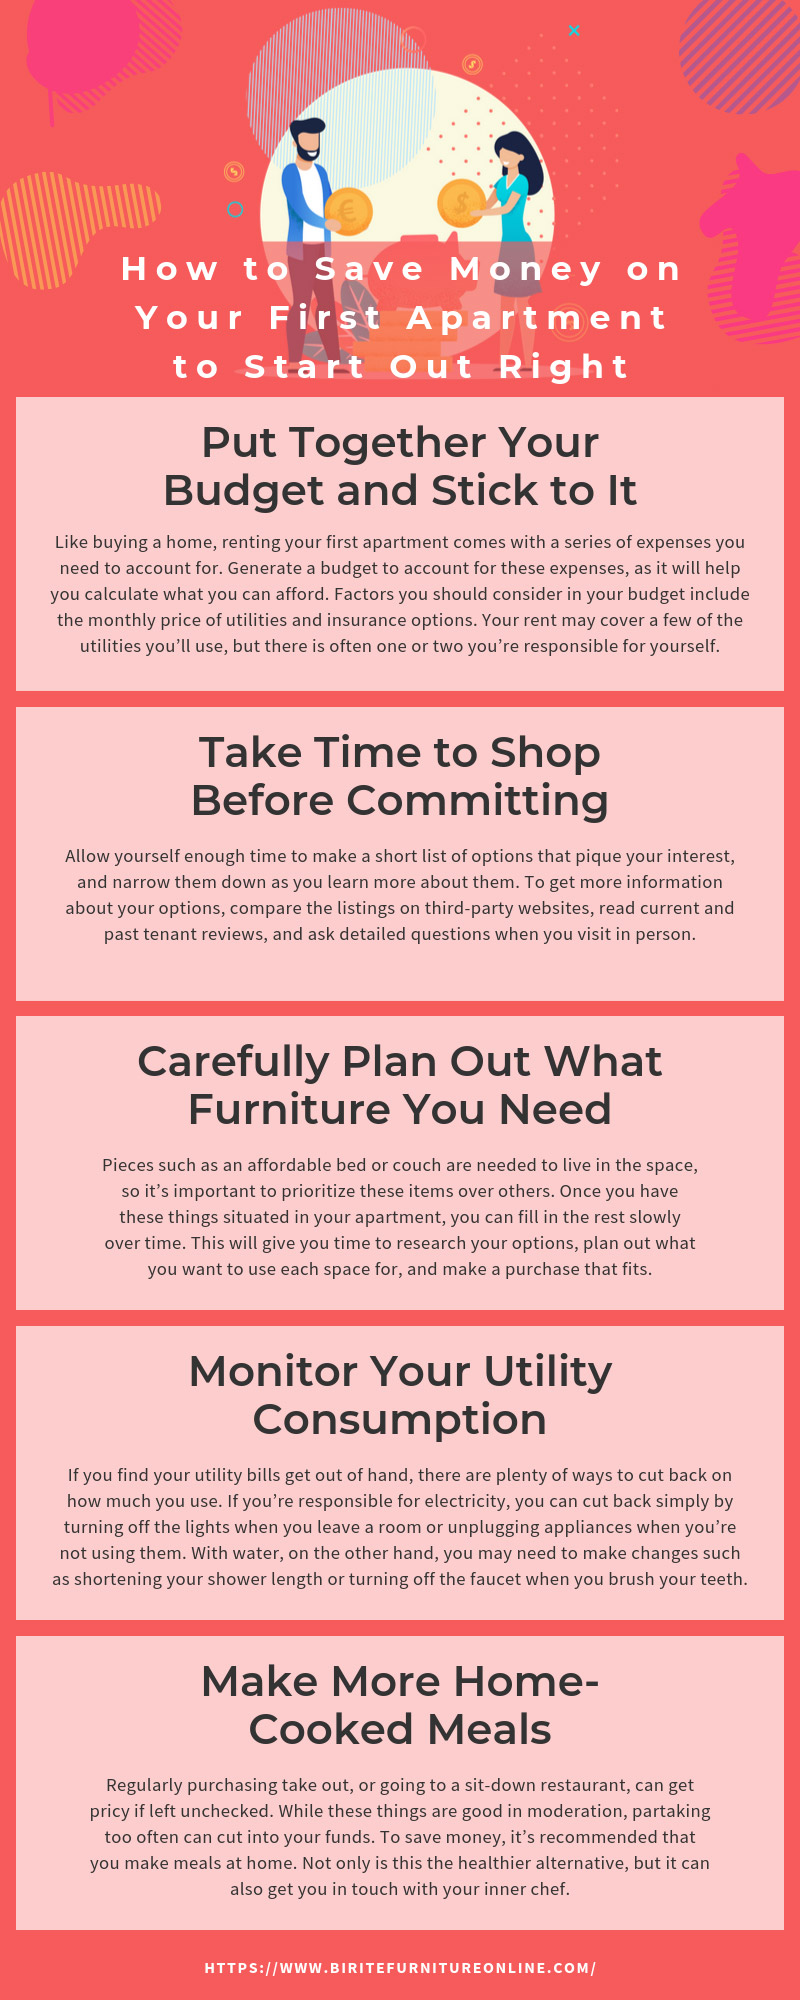 How to Save Money on Your First Apartment to Start Out Right infographic